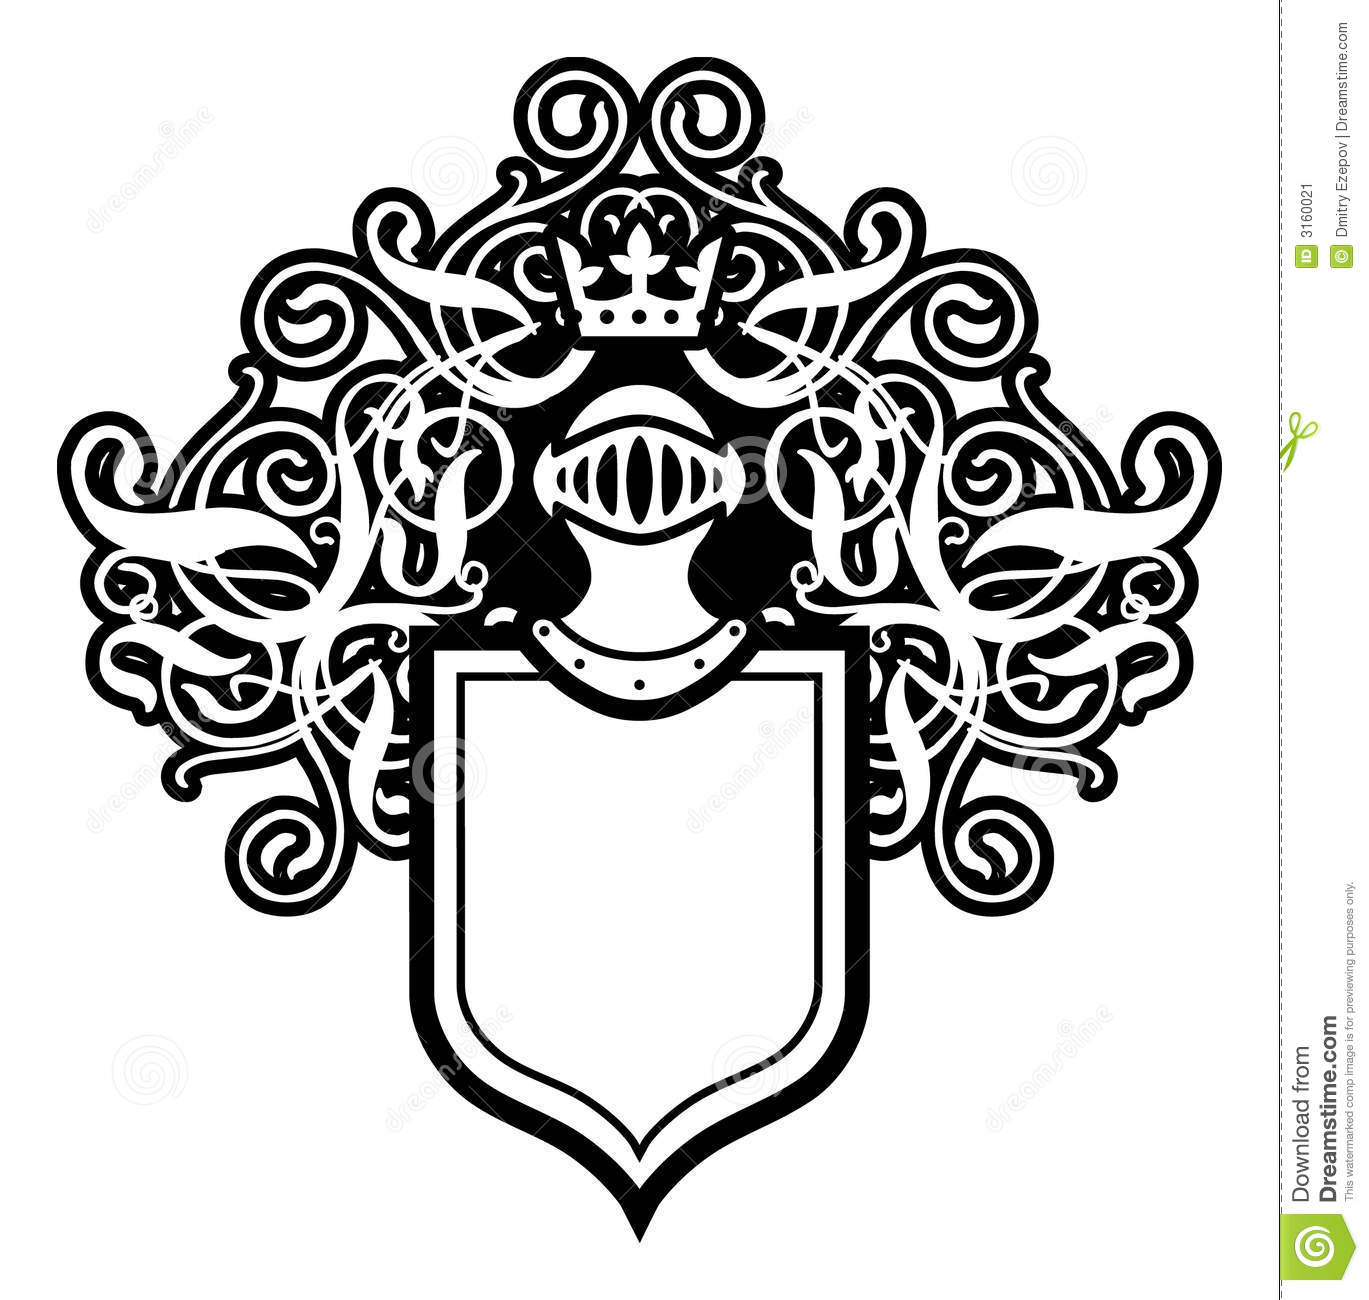 Blank Coat Of Arms Coloring Page